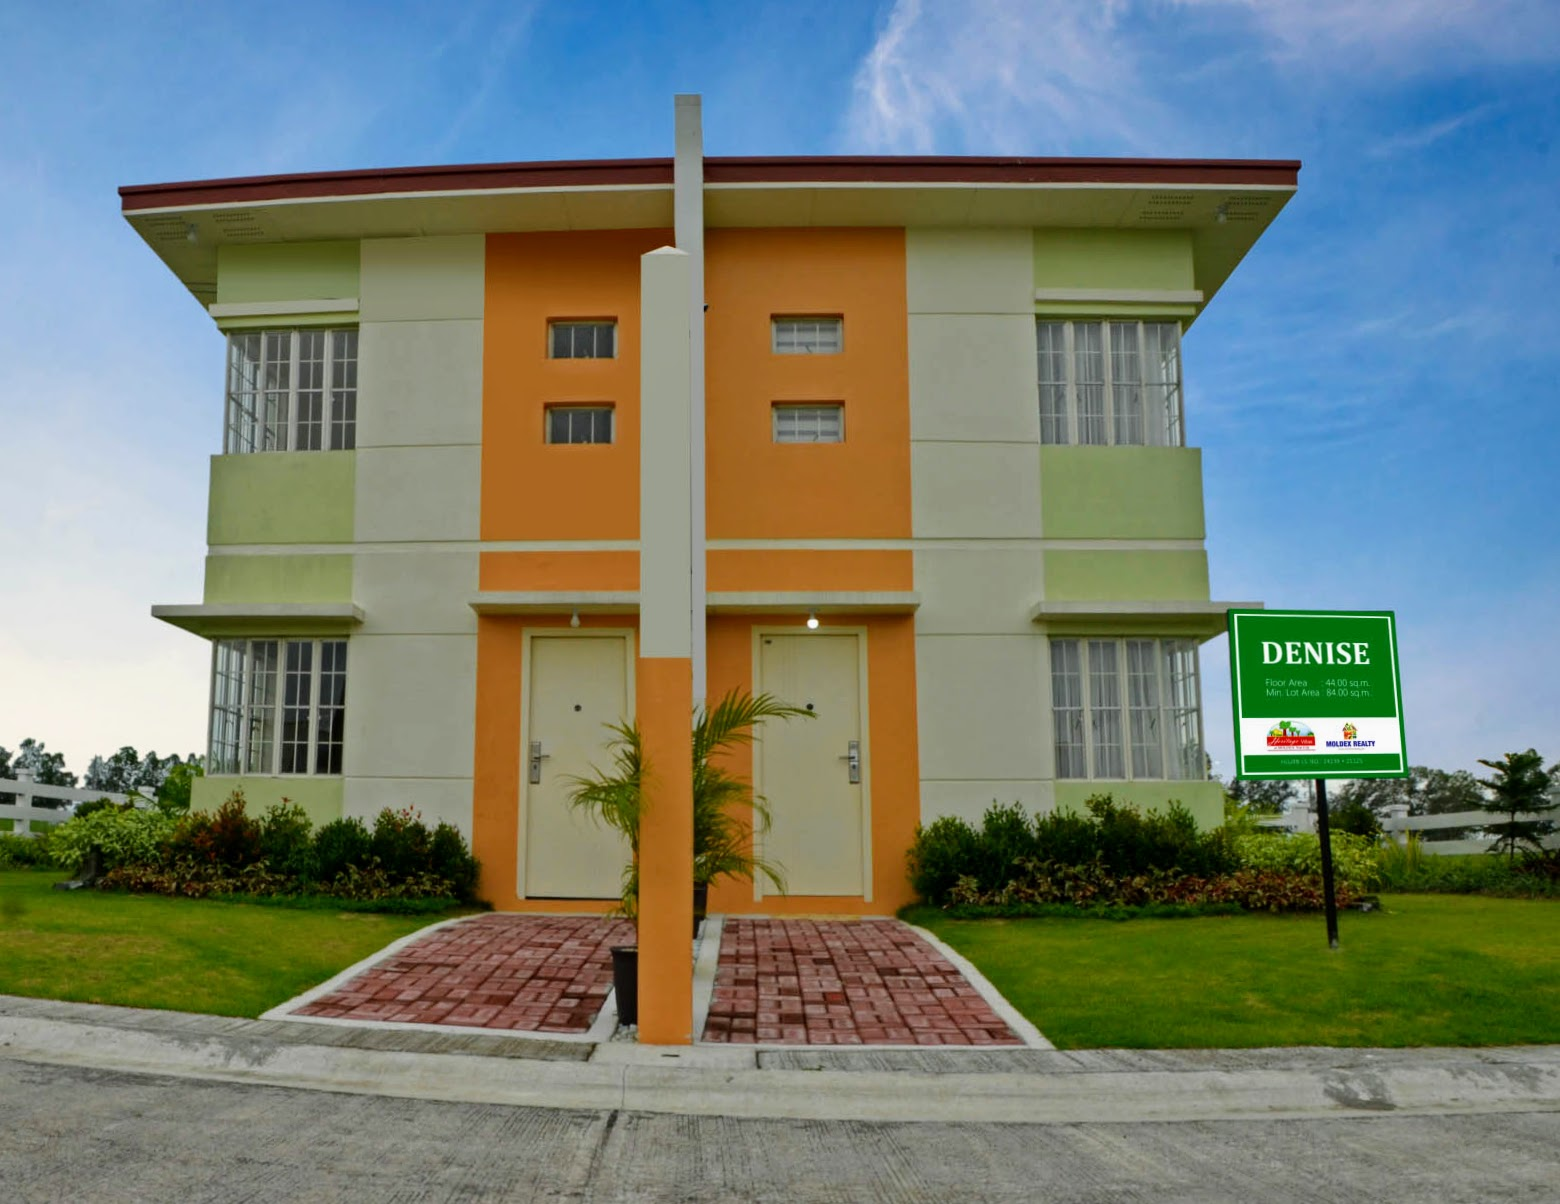 Heritage Angeles, Pampanga Denise unit